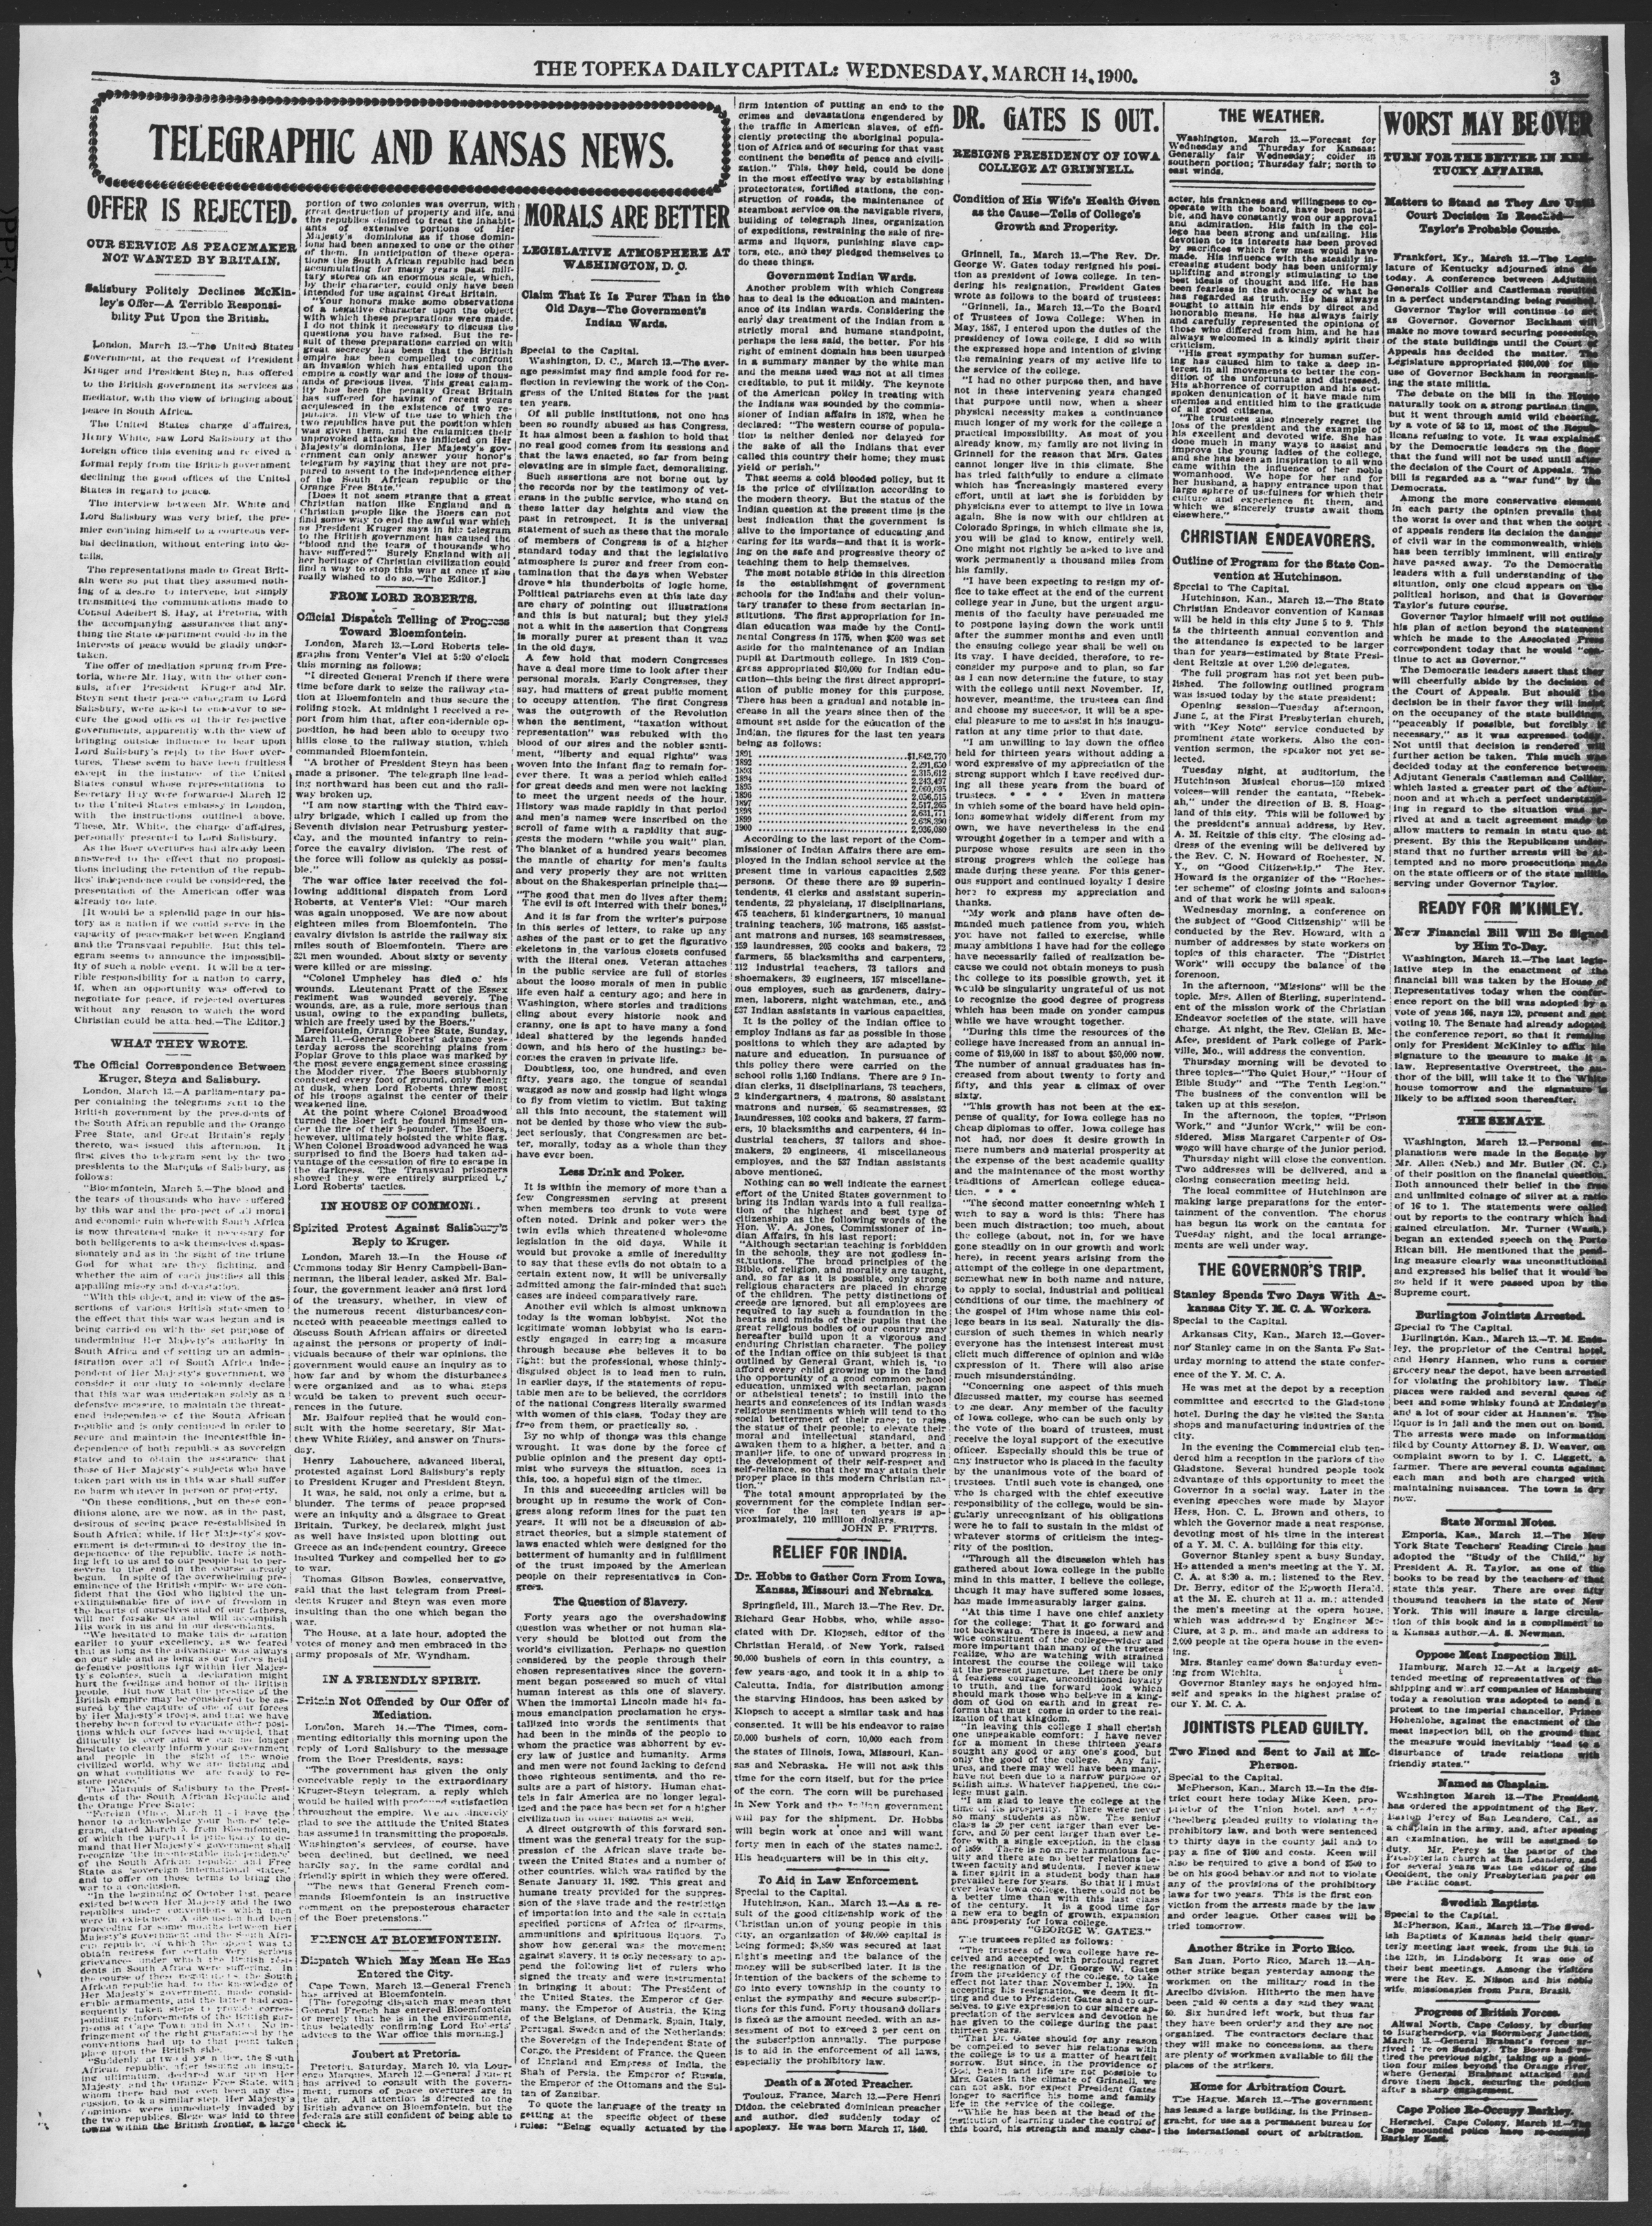 The Topeka daily capital. Sheldon edition - 3, Wednesday, March 14, 1900